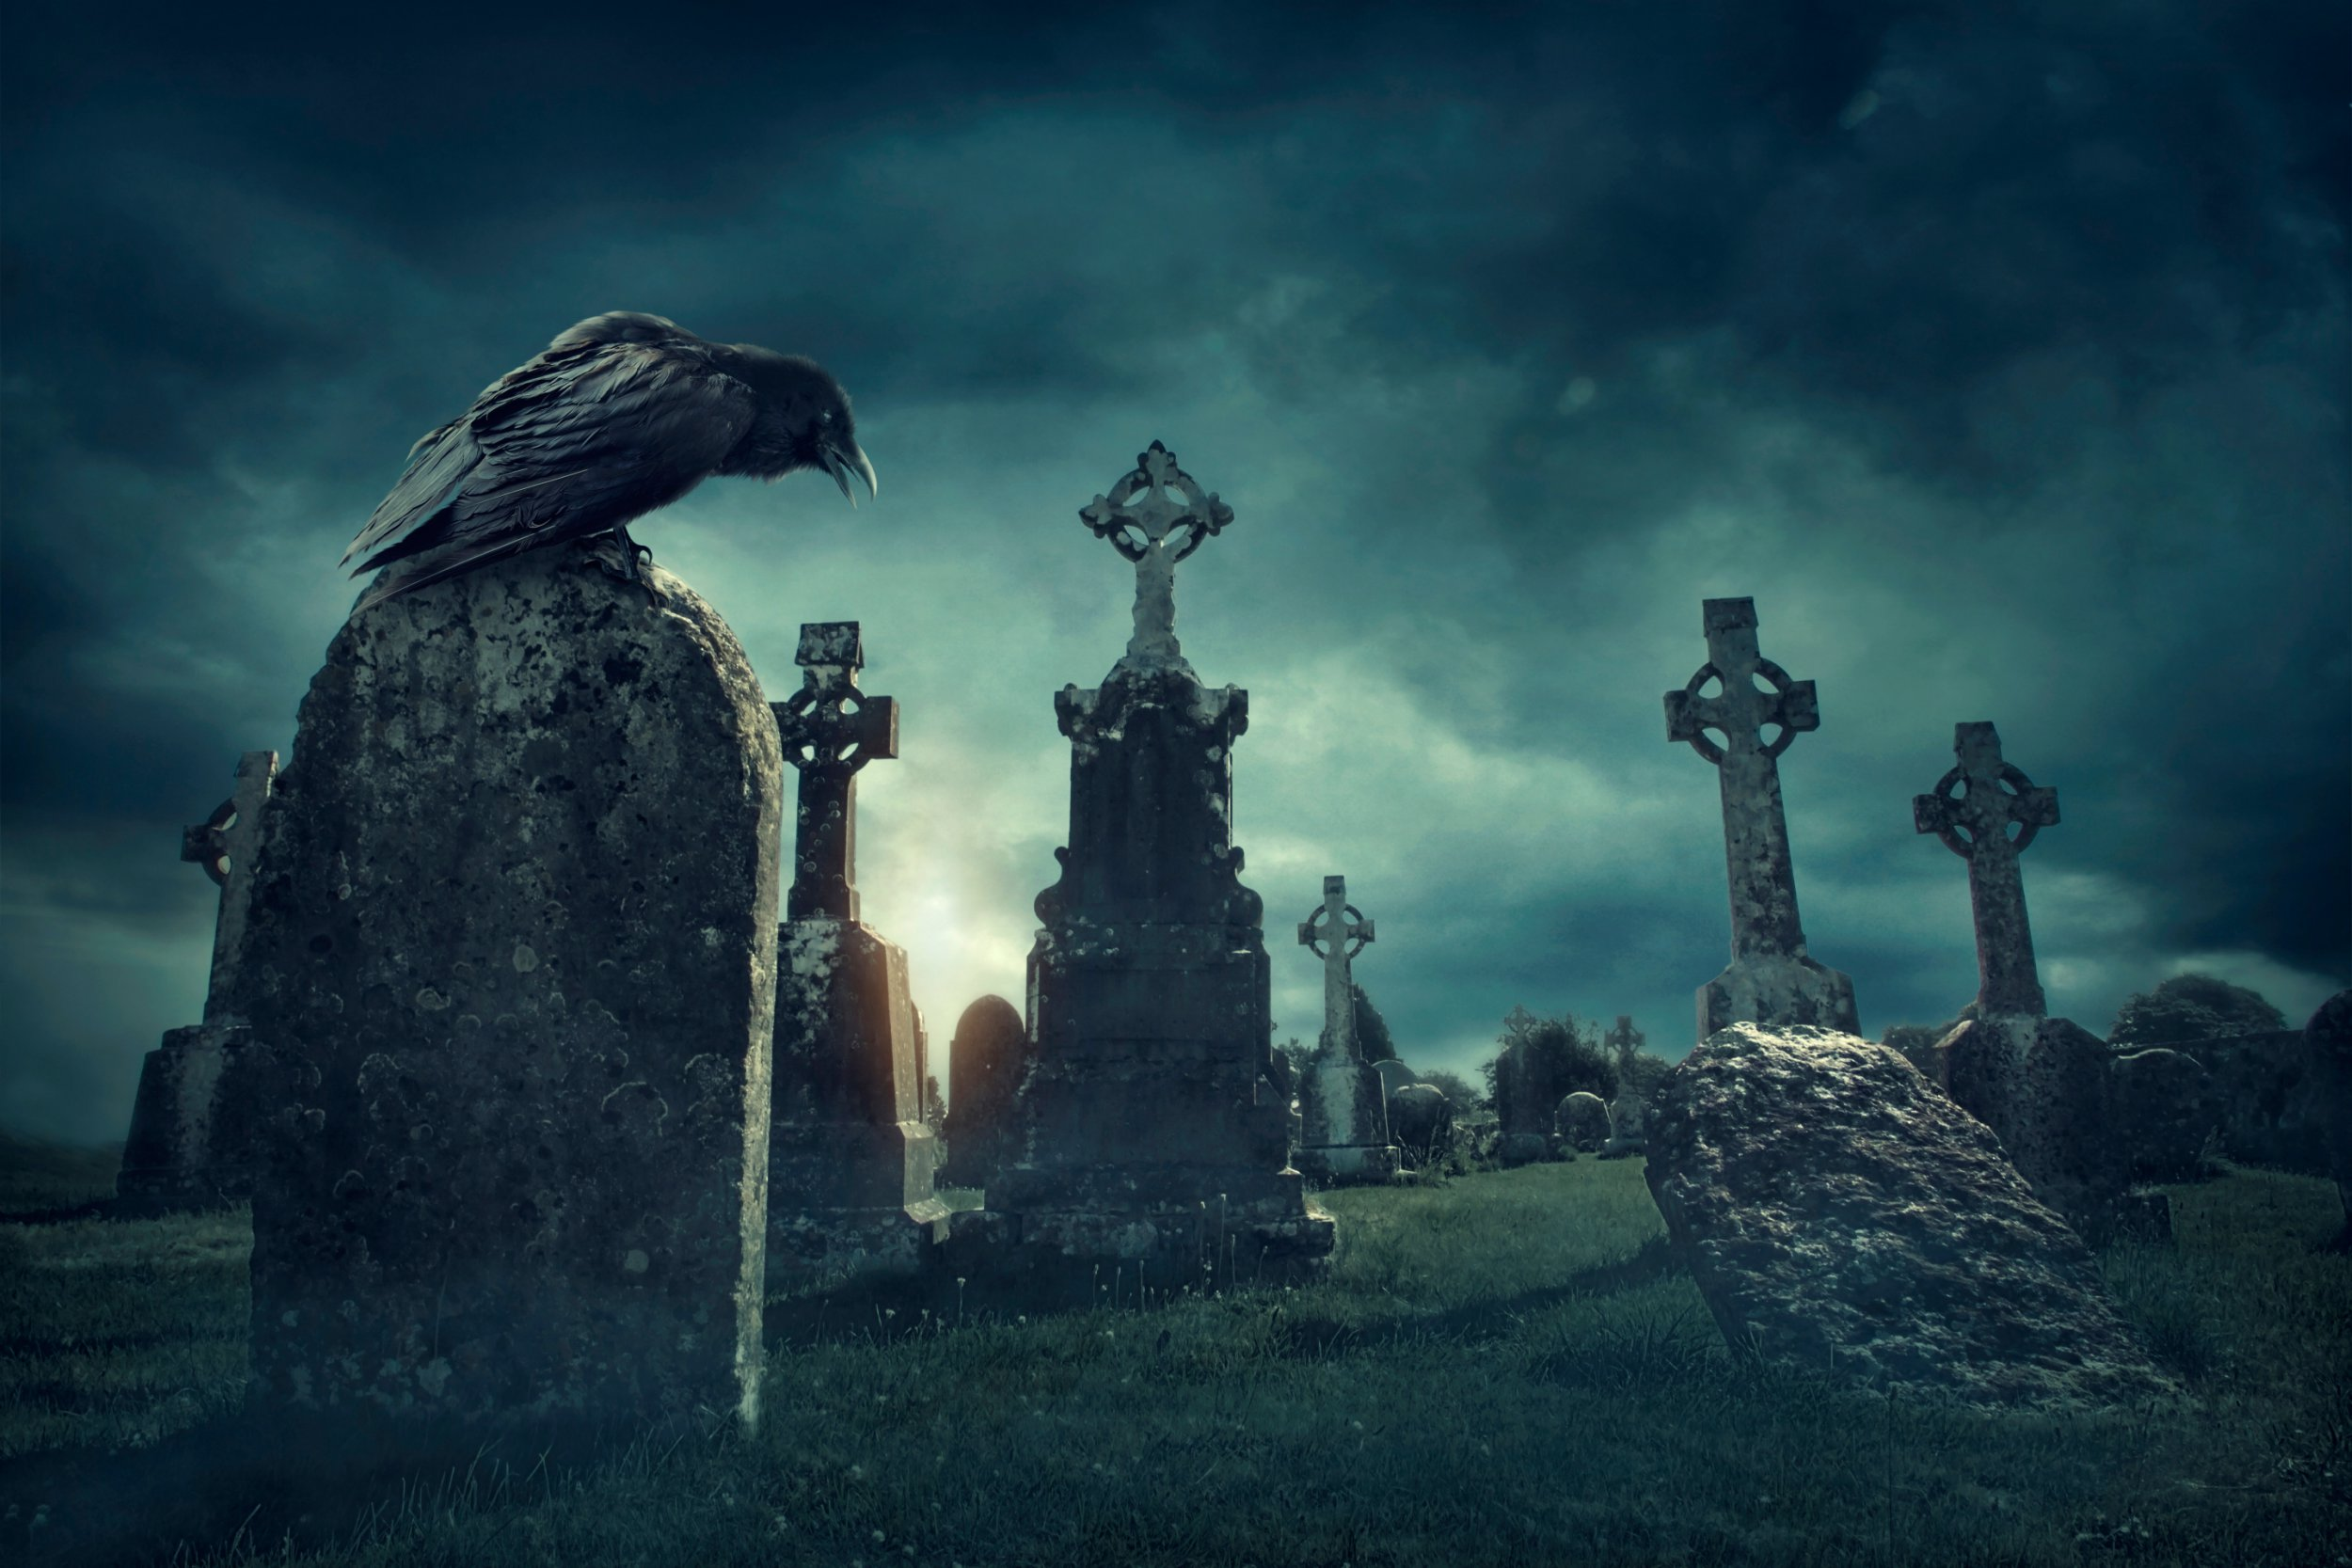 You can be paid £200 to spend Halloween night in a graveyard